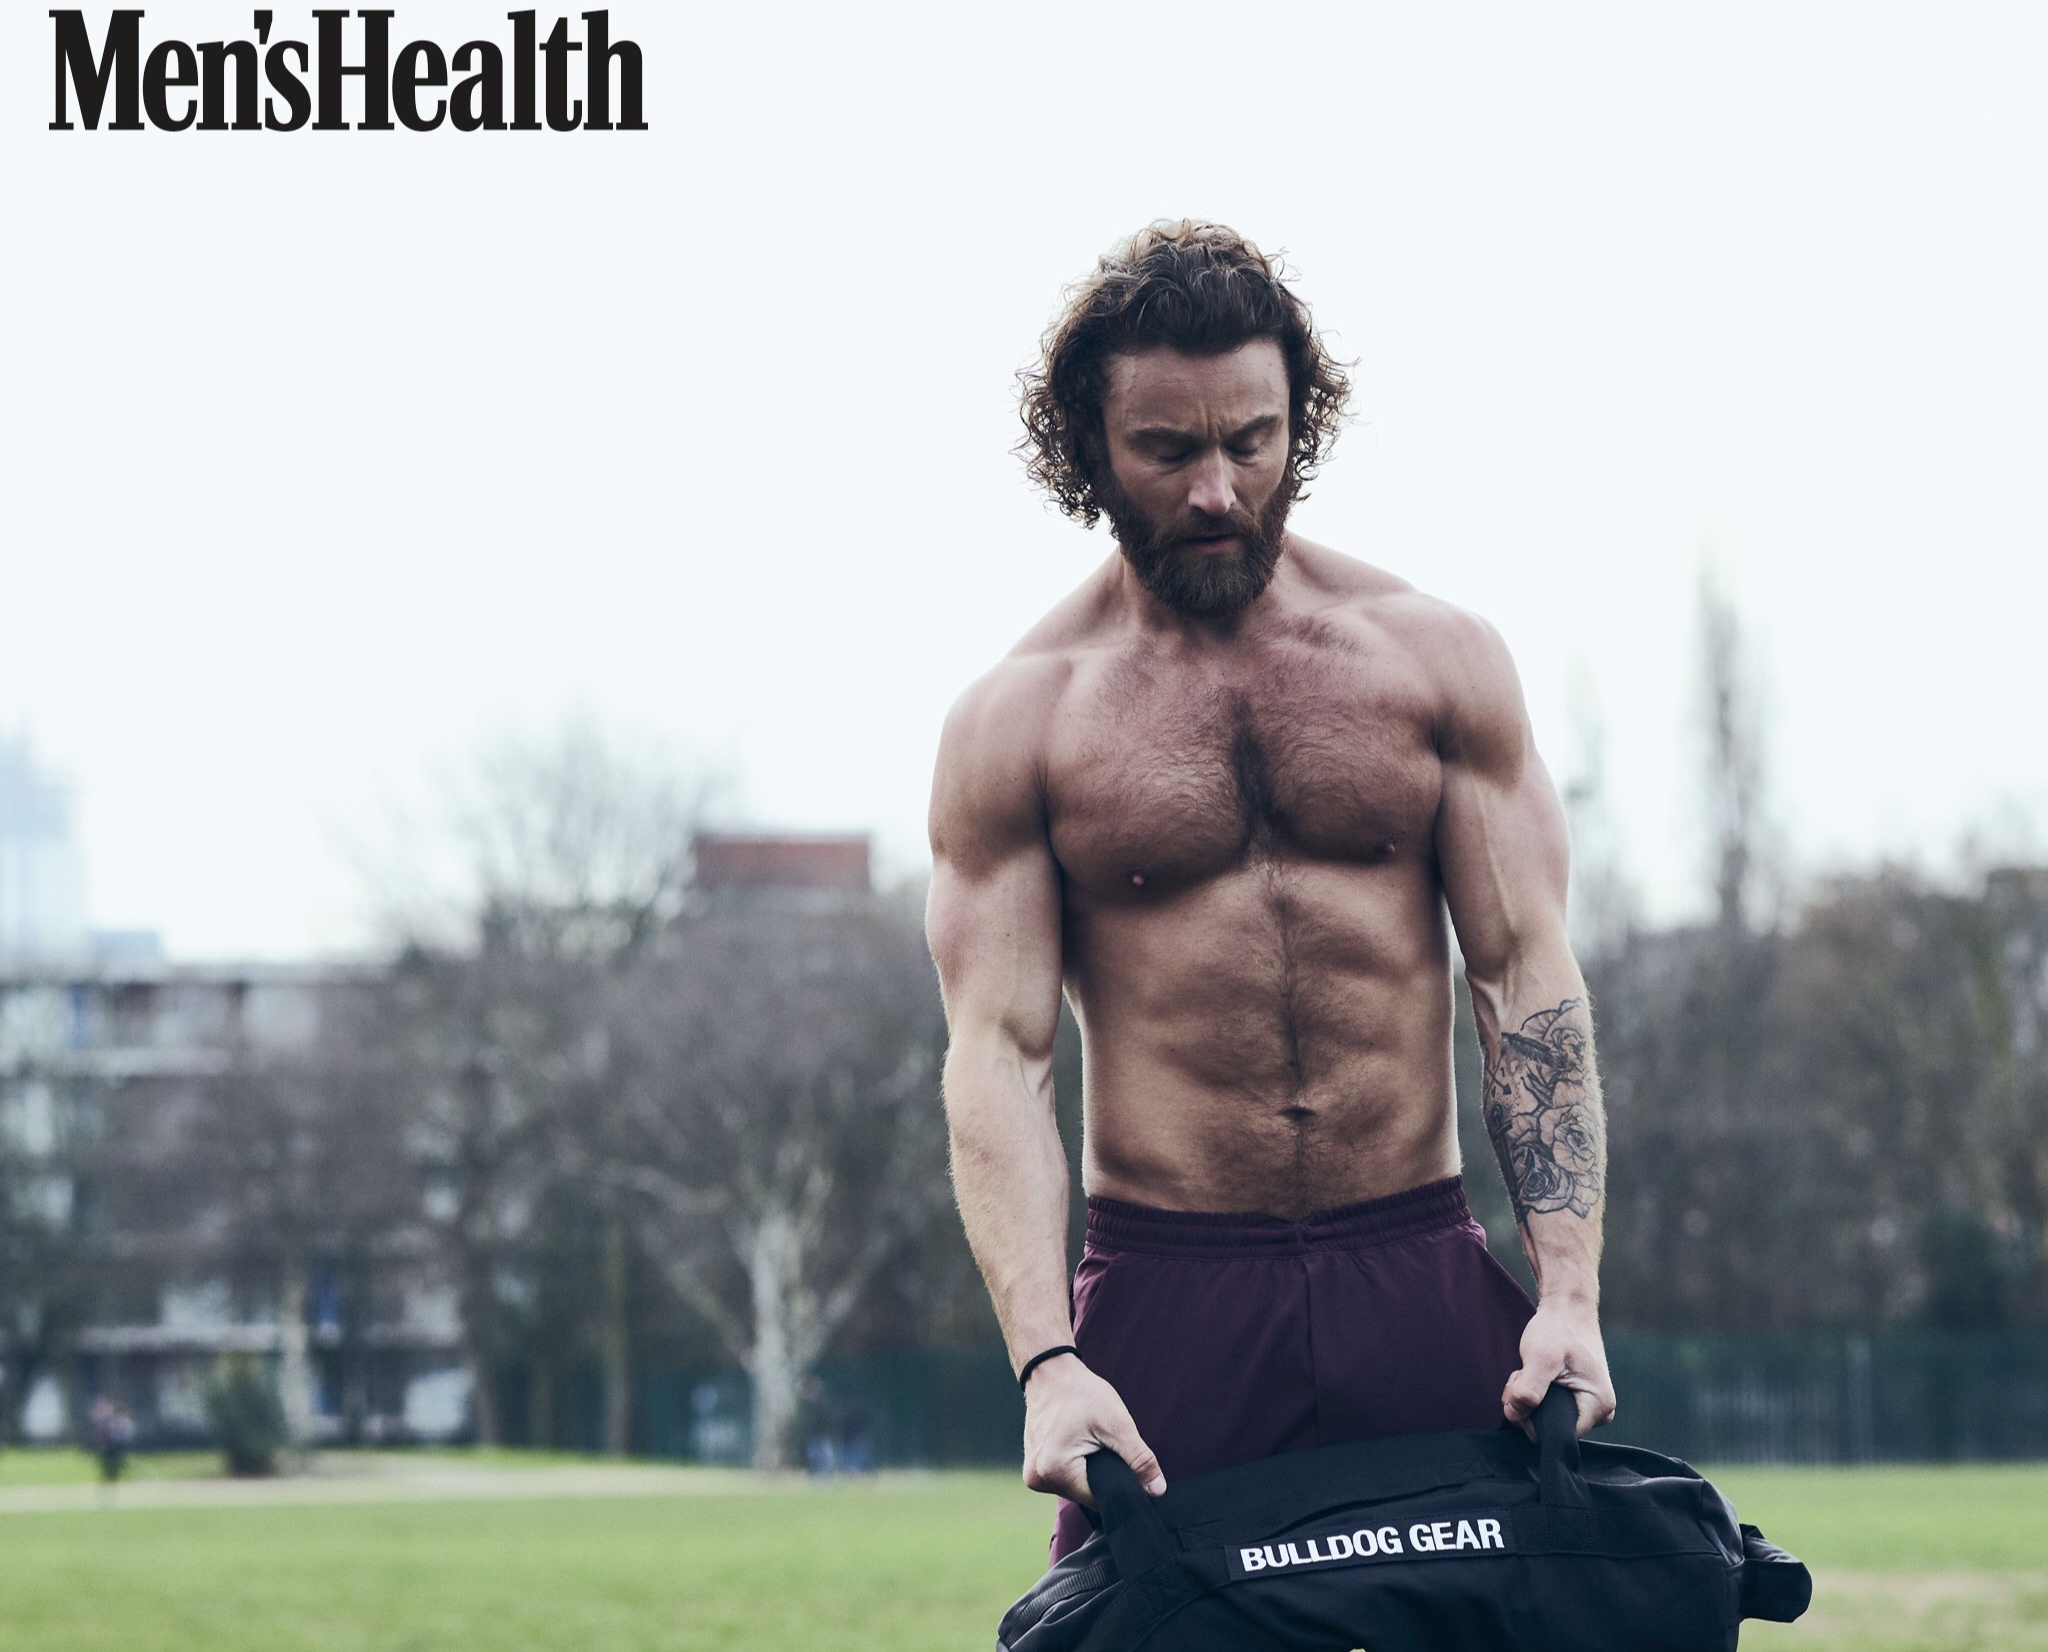 MENS HEALTH / APRIL 2019 / AVAILABLE PRETTY MUCH ANYWHERE THEY SELL ANYTHING.